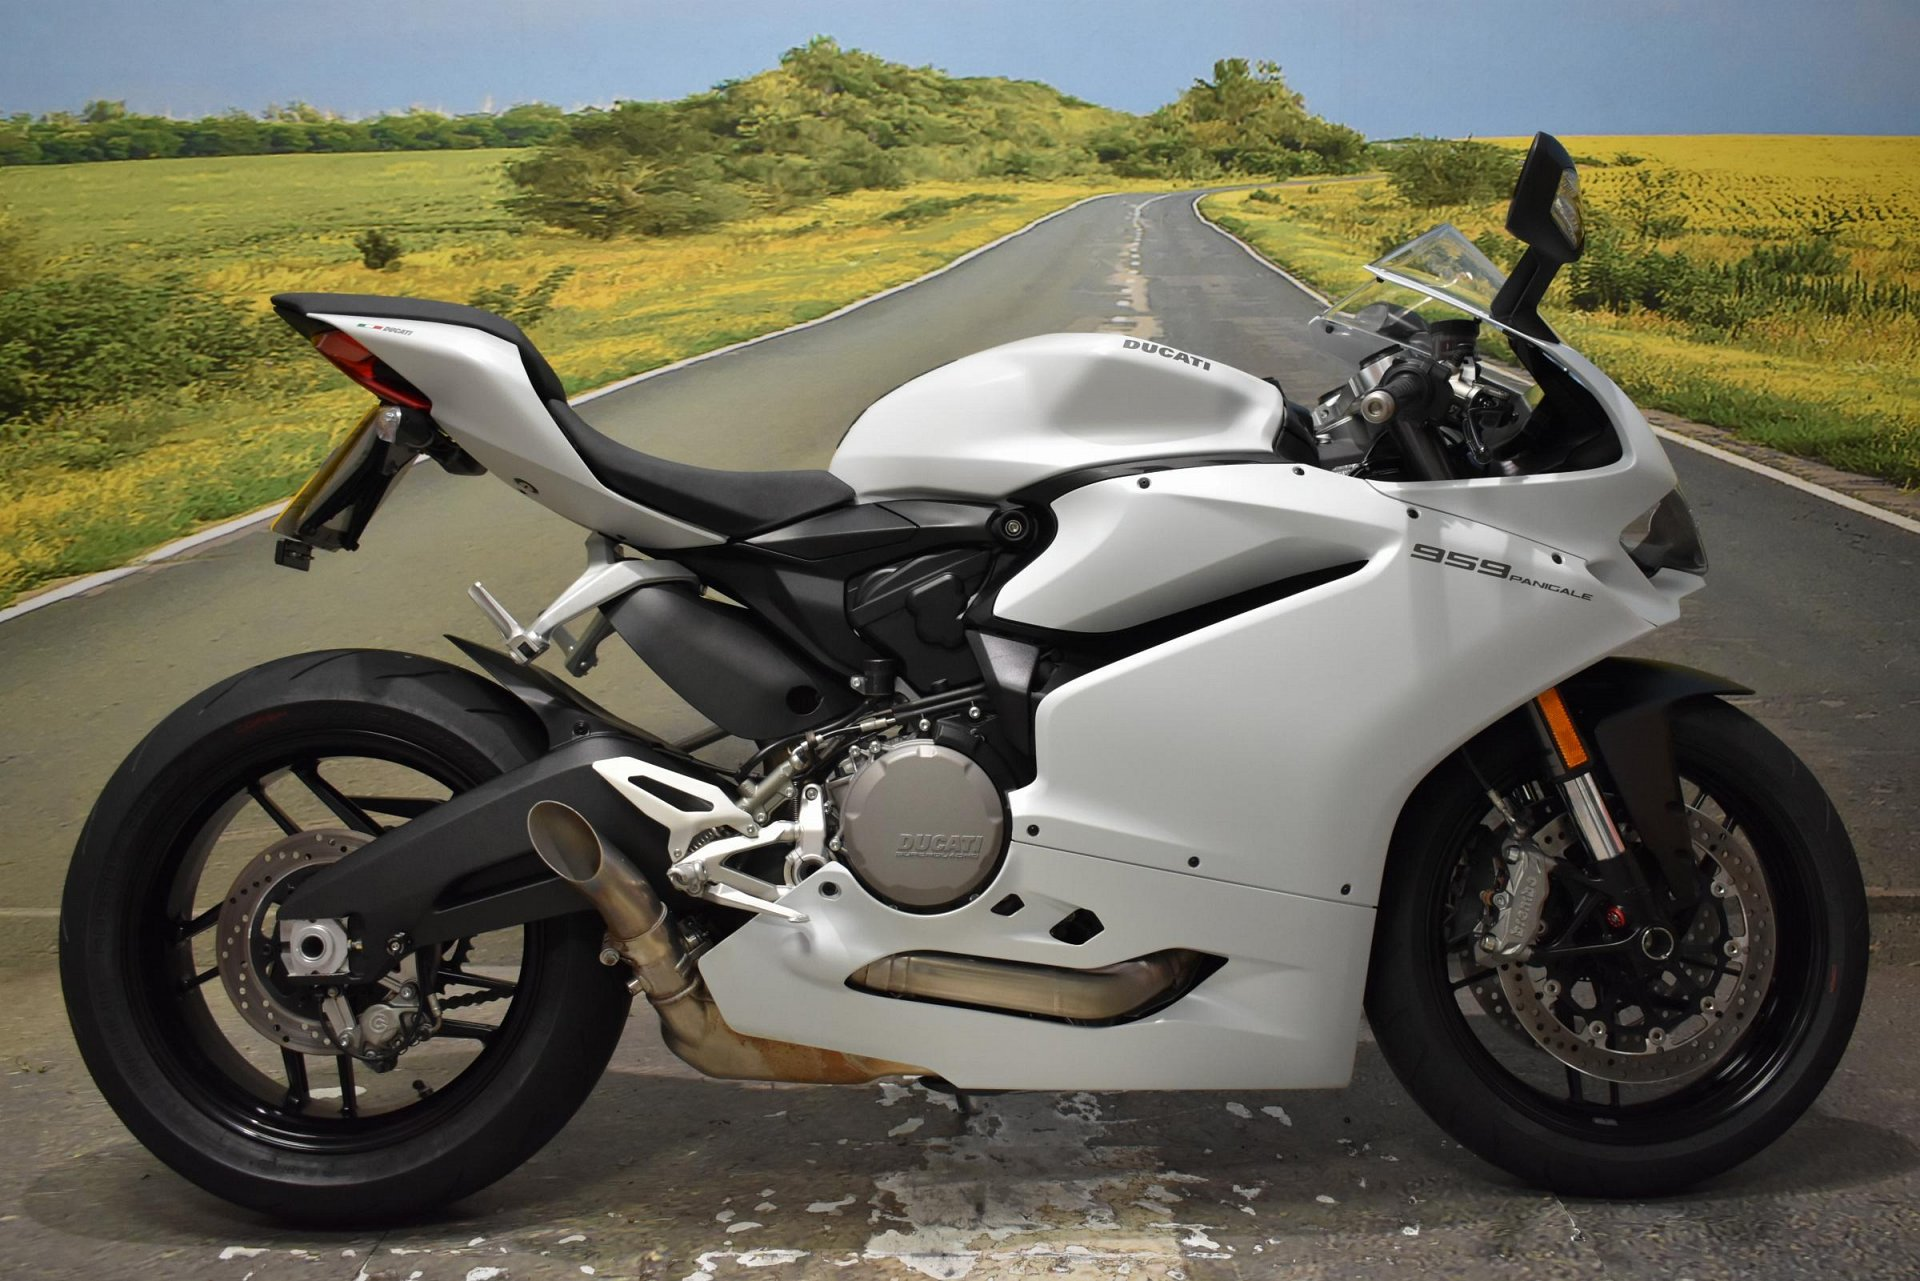 2018 Ducati 959 Panigale for sale in Derbyshire